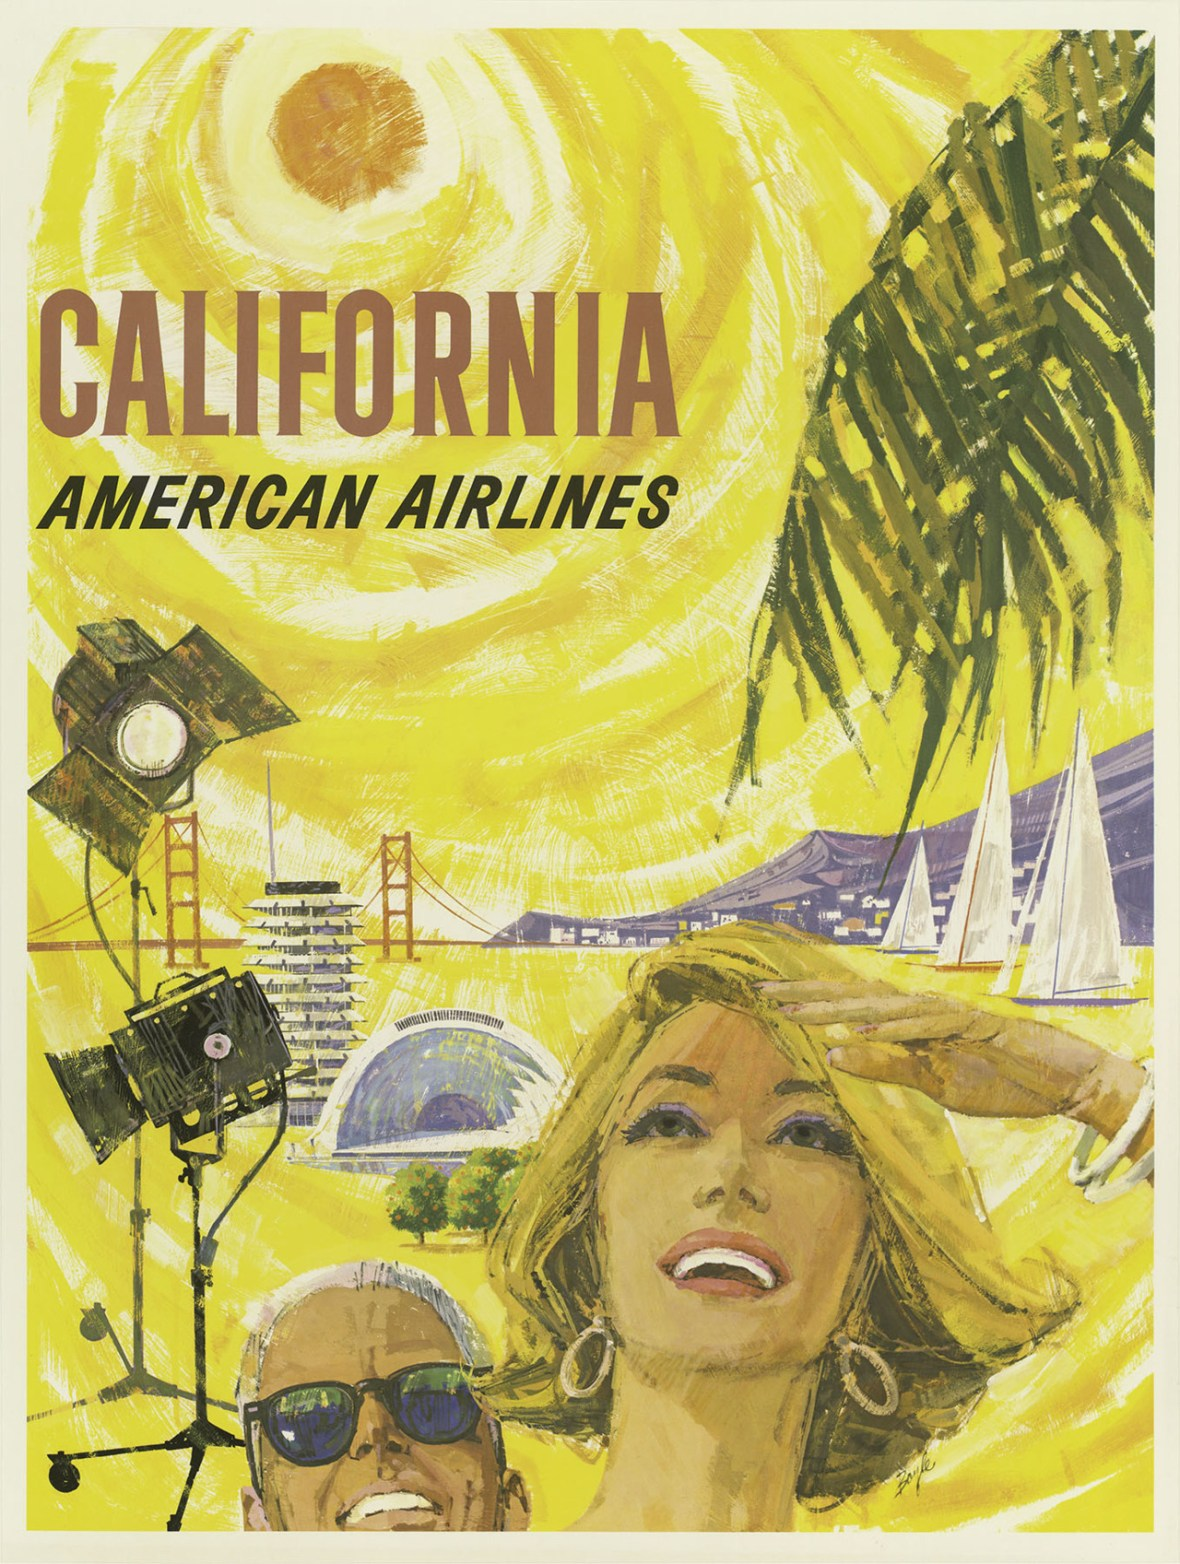 American Airlines 'California' - 1960